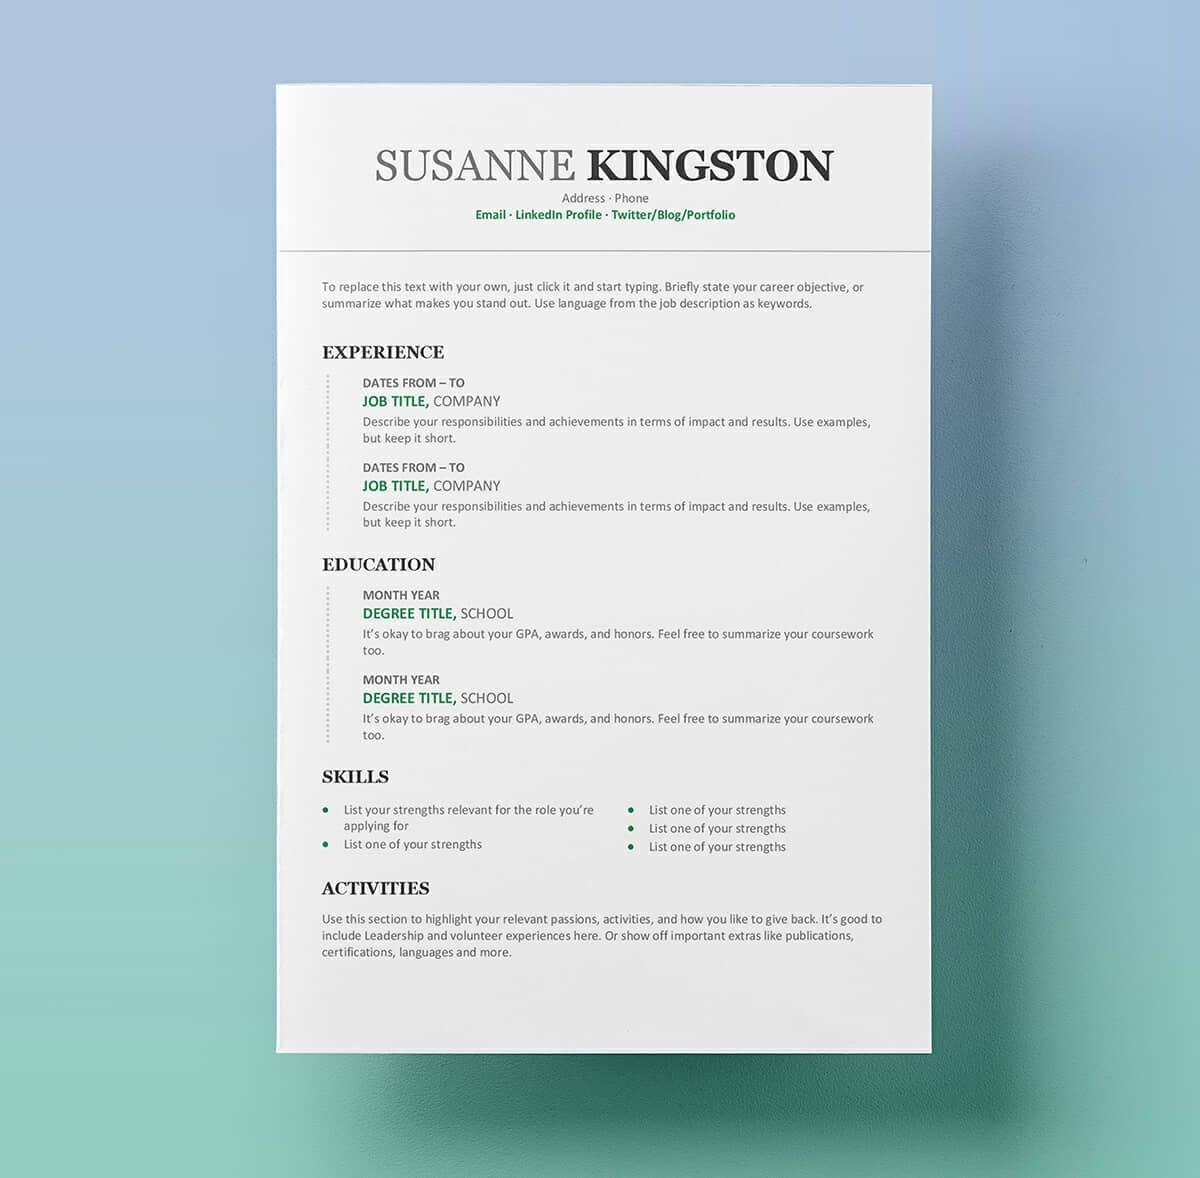 resume templates for microsoft word free modern grammarly writing assistant property Resume Microsoft Word Resume Templates Modern